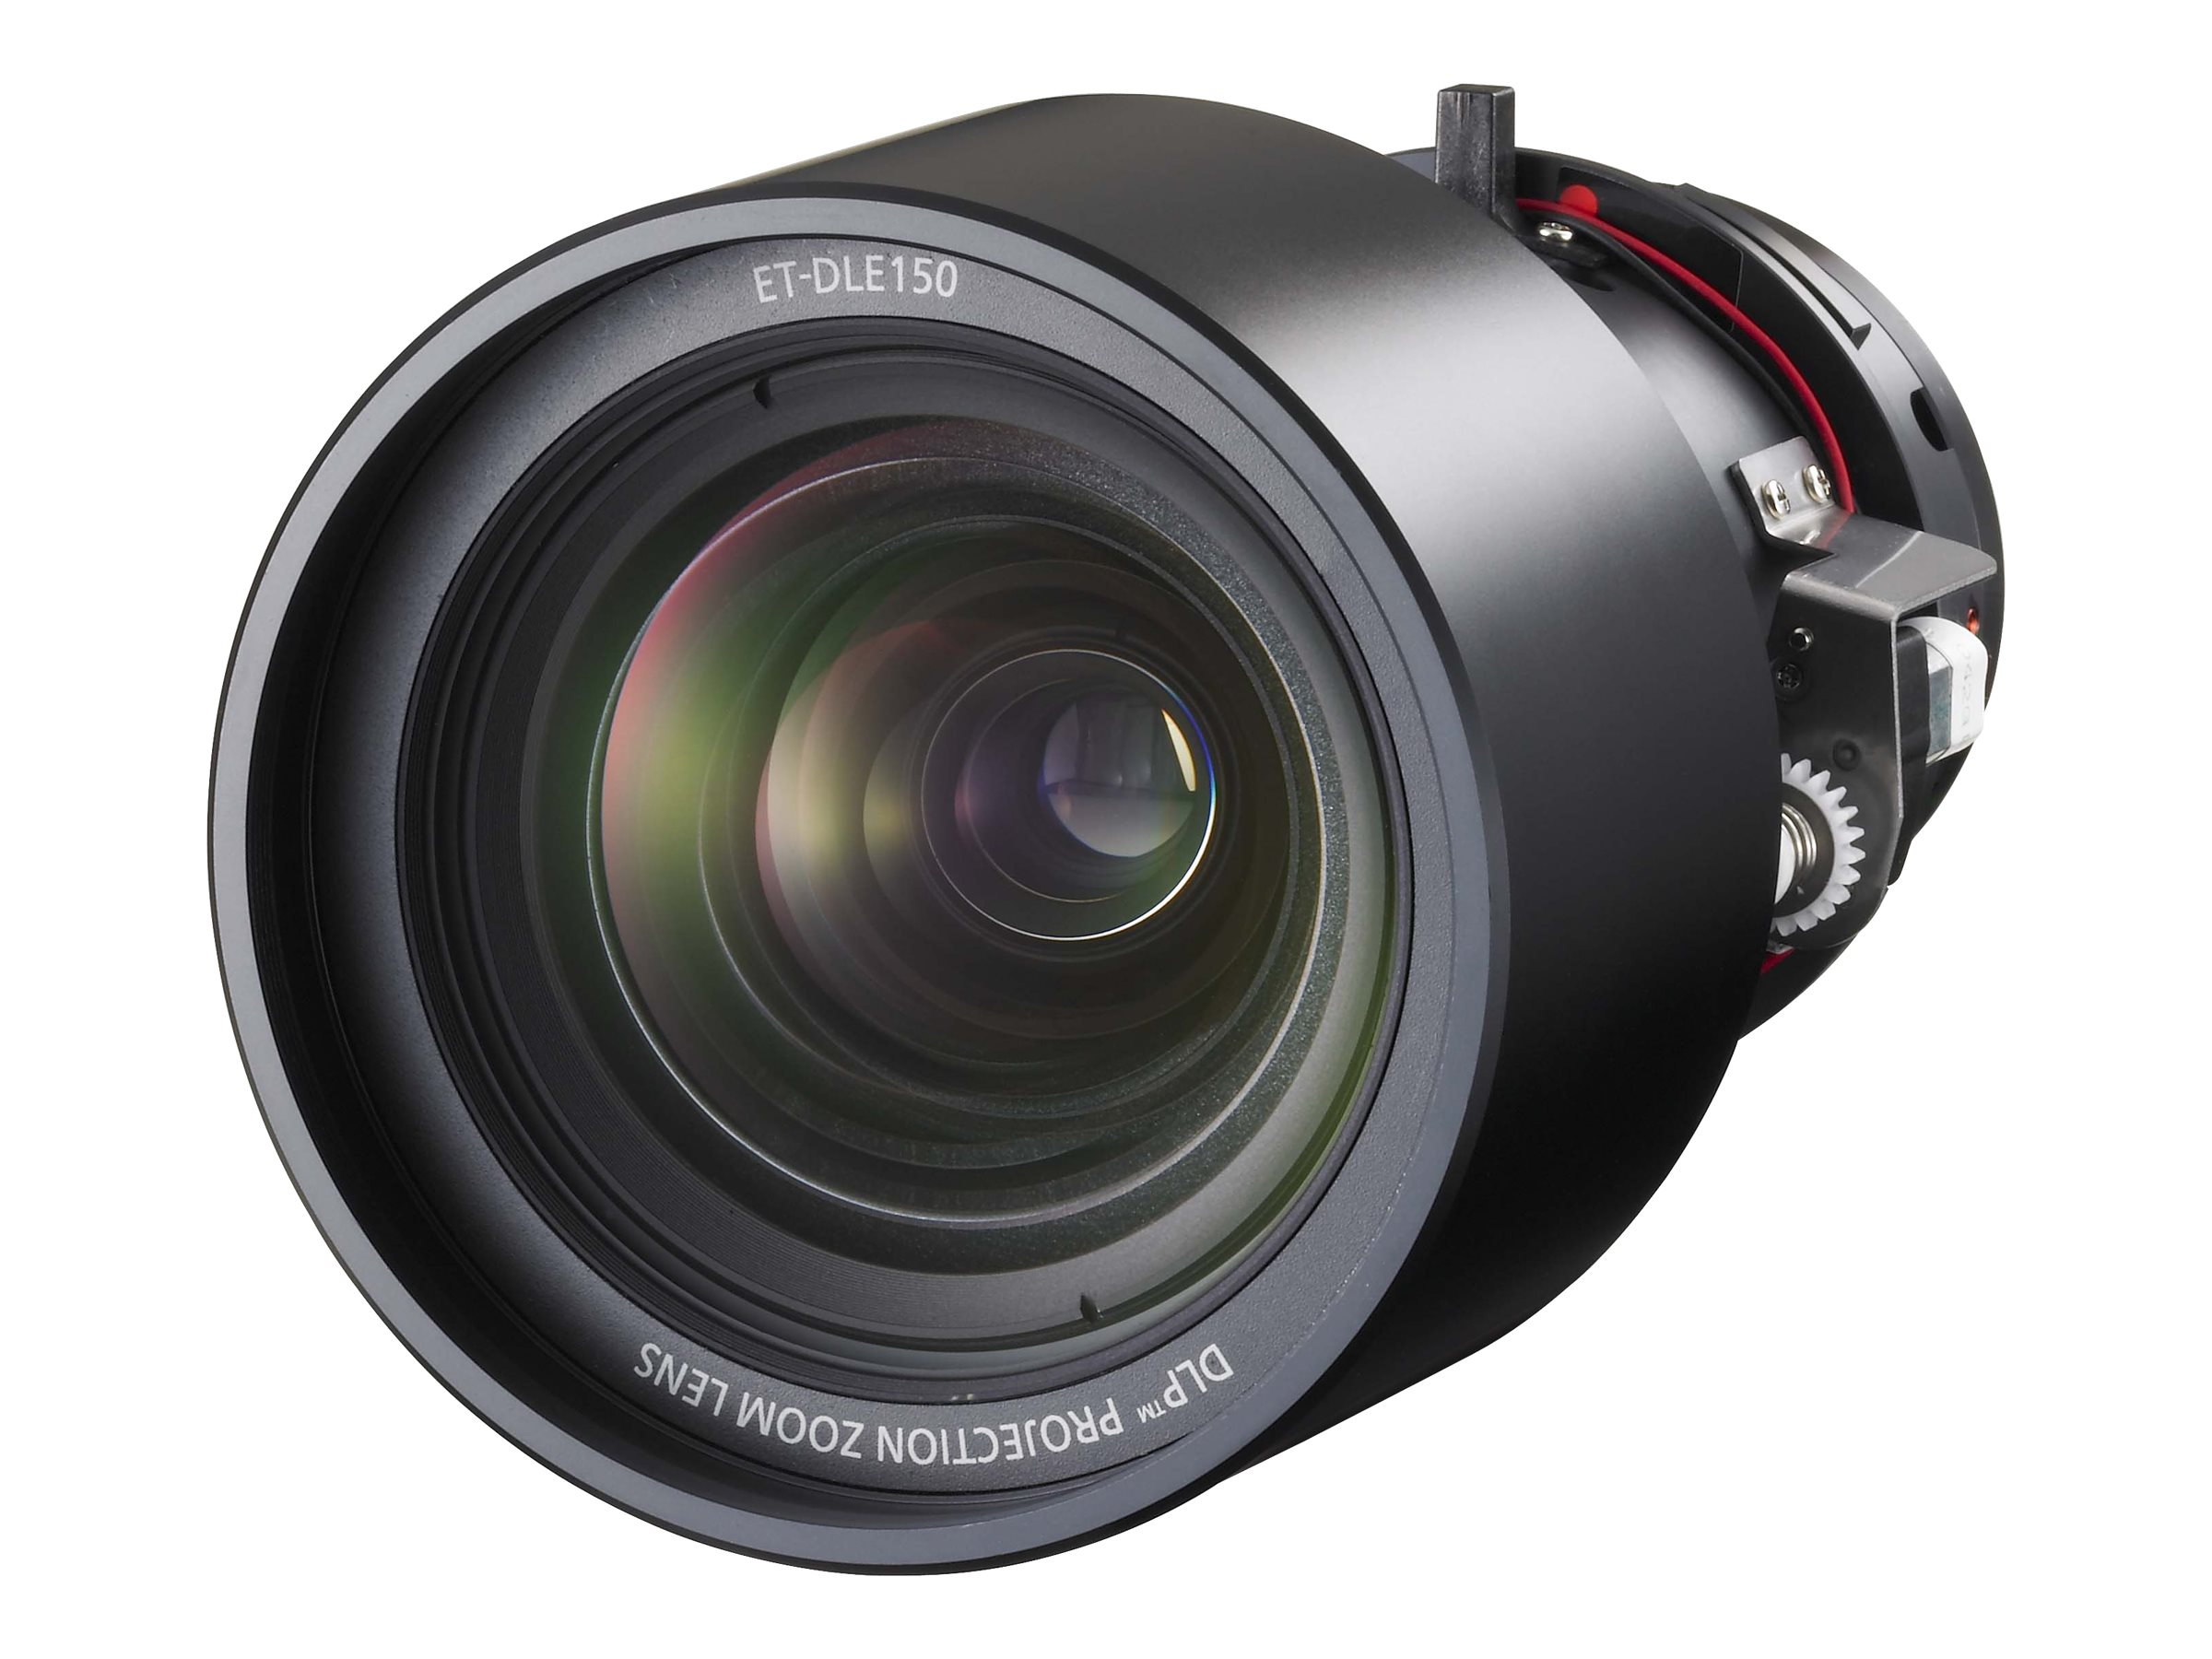 Panasonic Power Zoom Lens 1.3-2.0:1 for PT-DW5100U, DW5100UL, D5700U, D5700UL